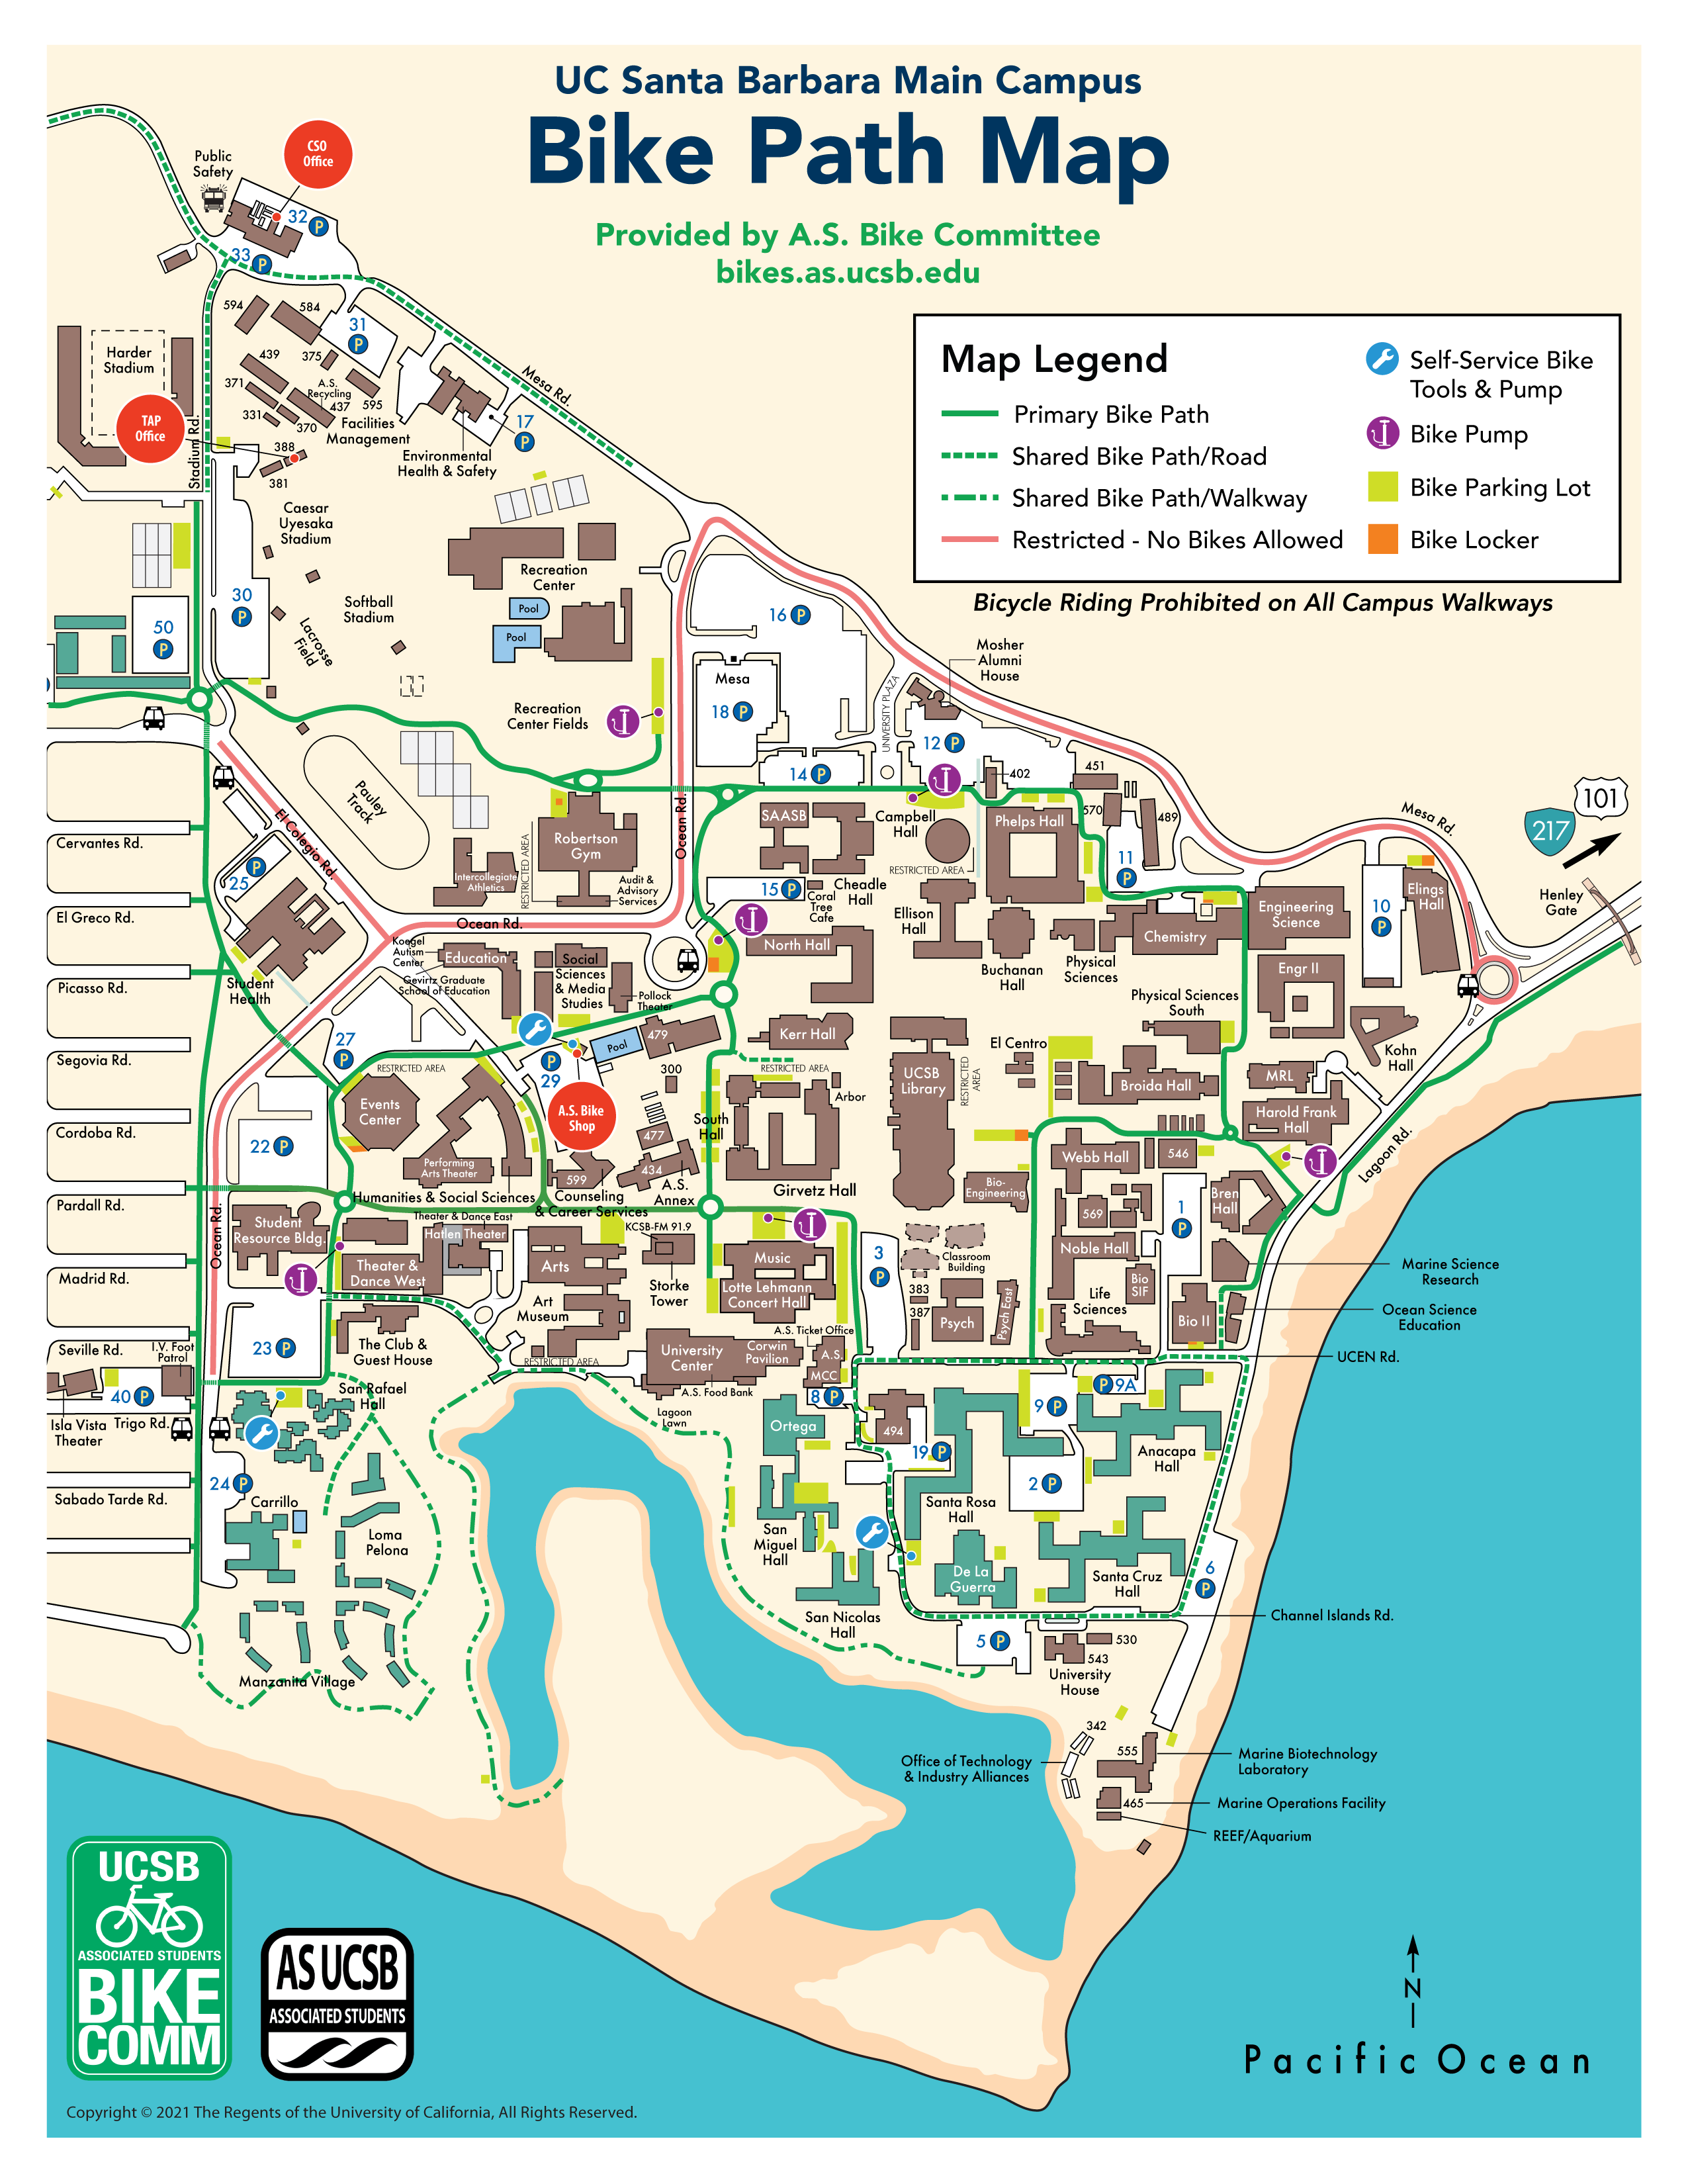 A map of the UCSB campus bike paths and lots